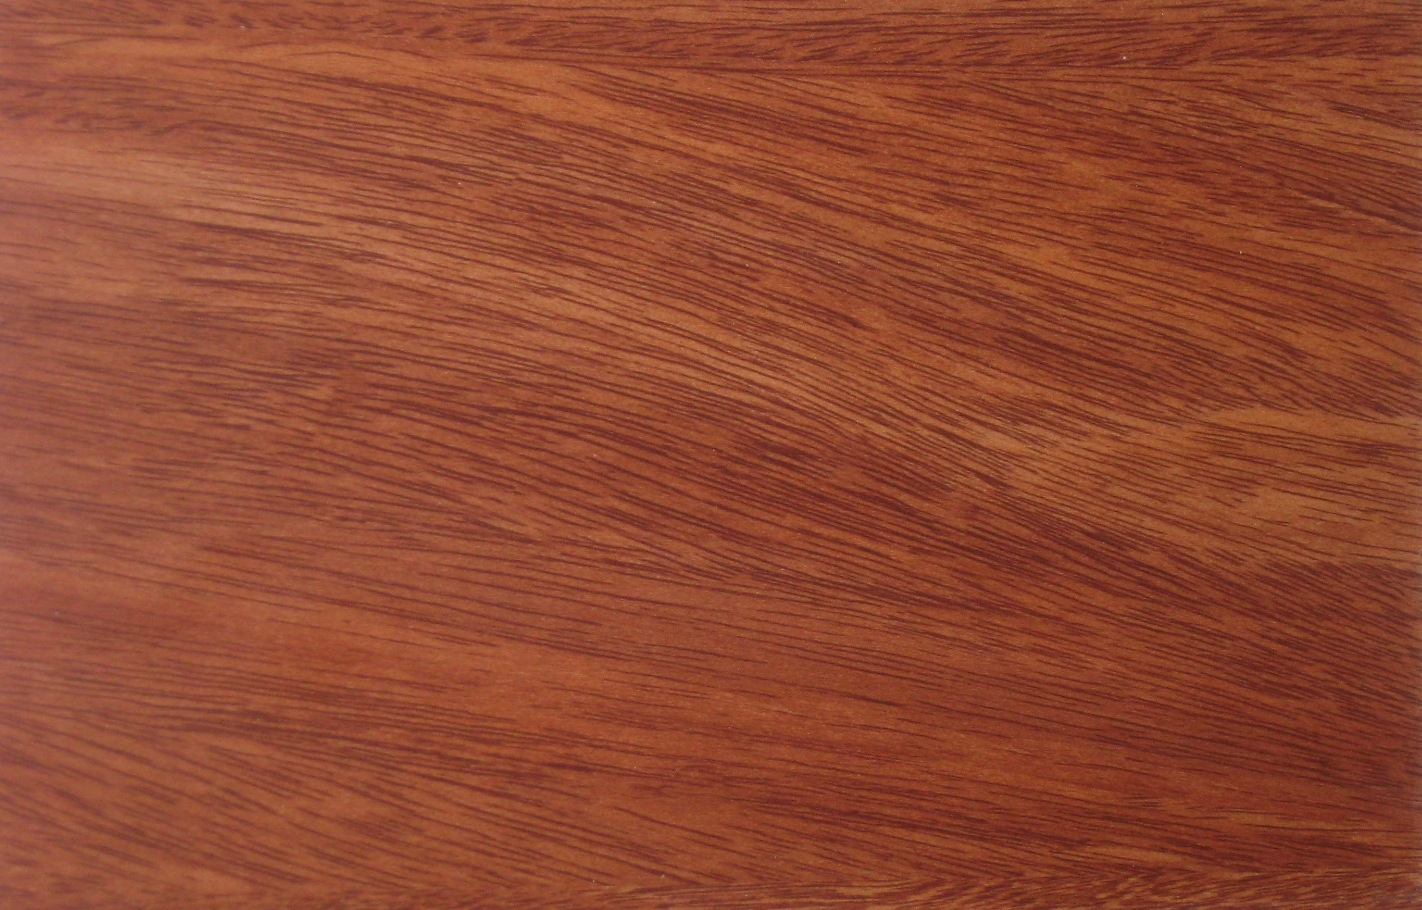 Konecto Exotic Wood Floating Vinyl Plank Pictures